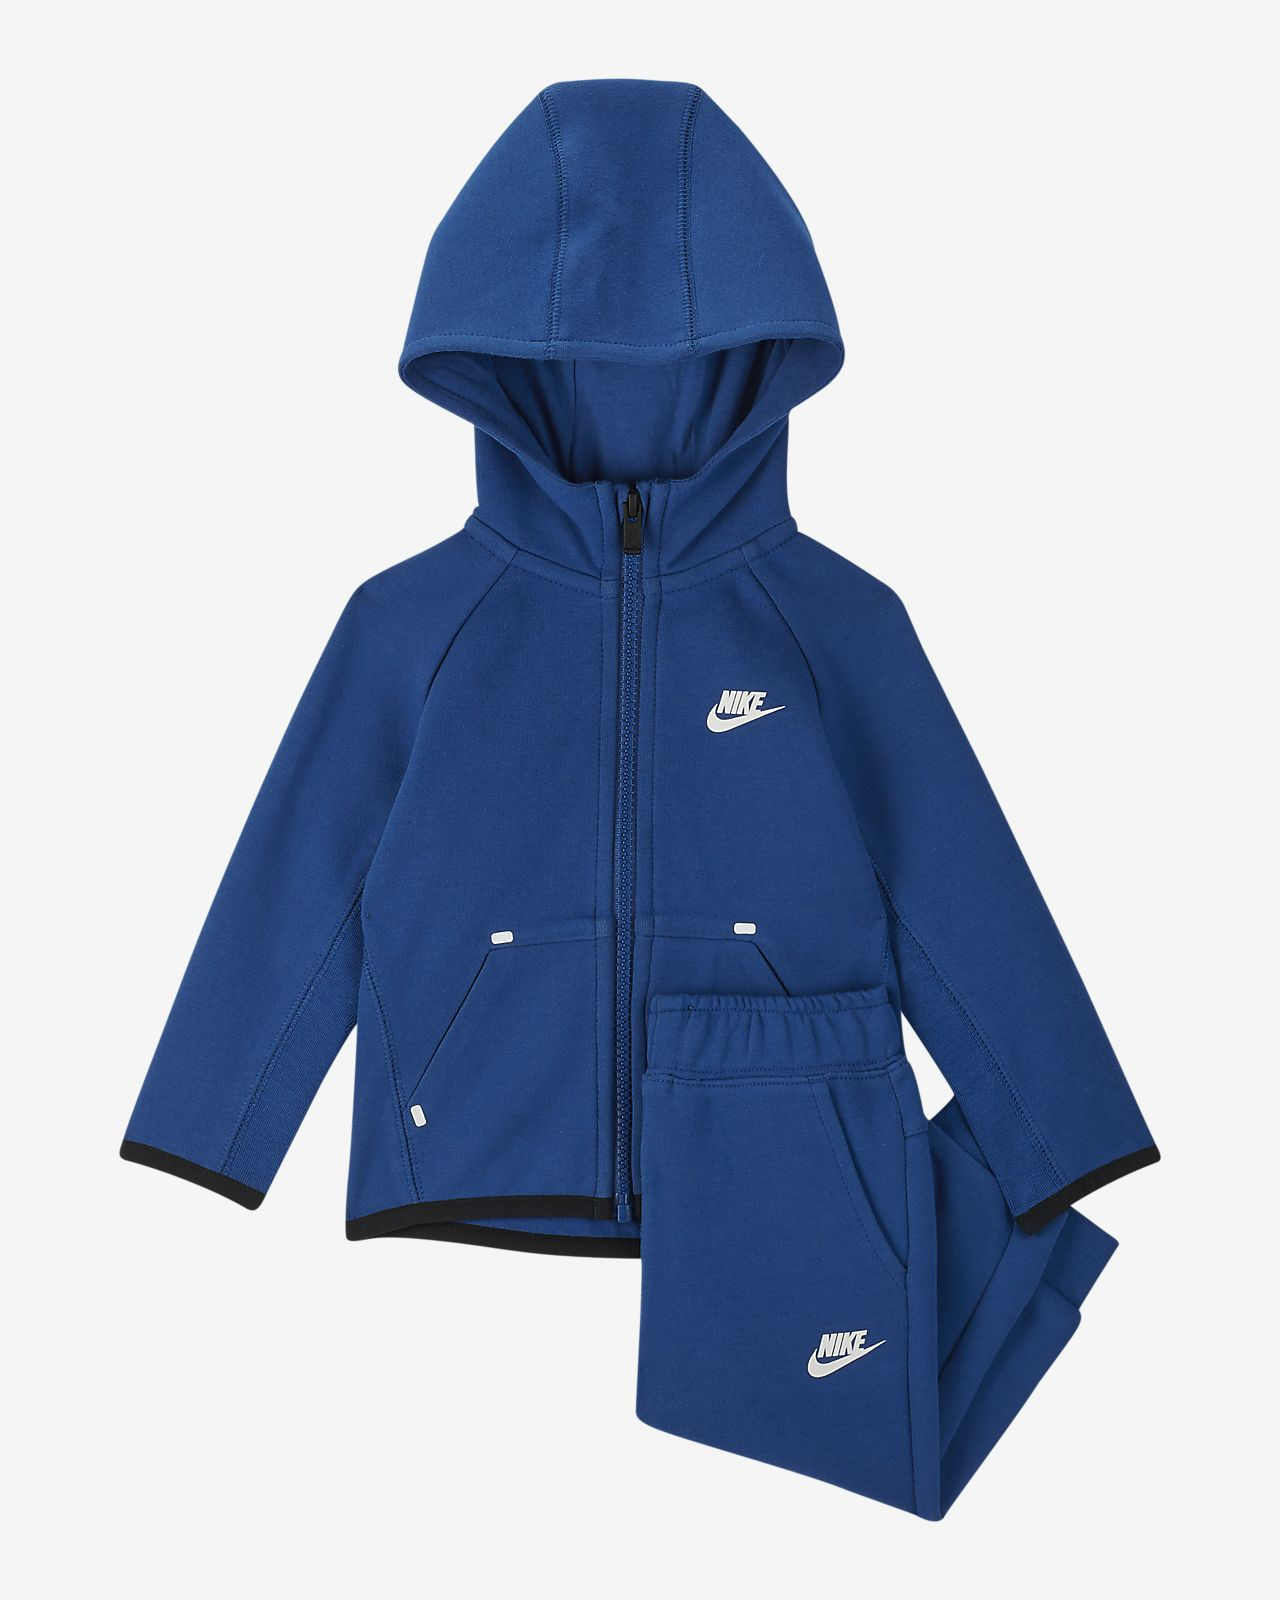 outlet store best sneakers online for sale Ensemble sweat à capuche et pantalon de jogging Nike Sportswear Tech Fleece  pour Bébé (12 - 24 mois)